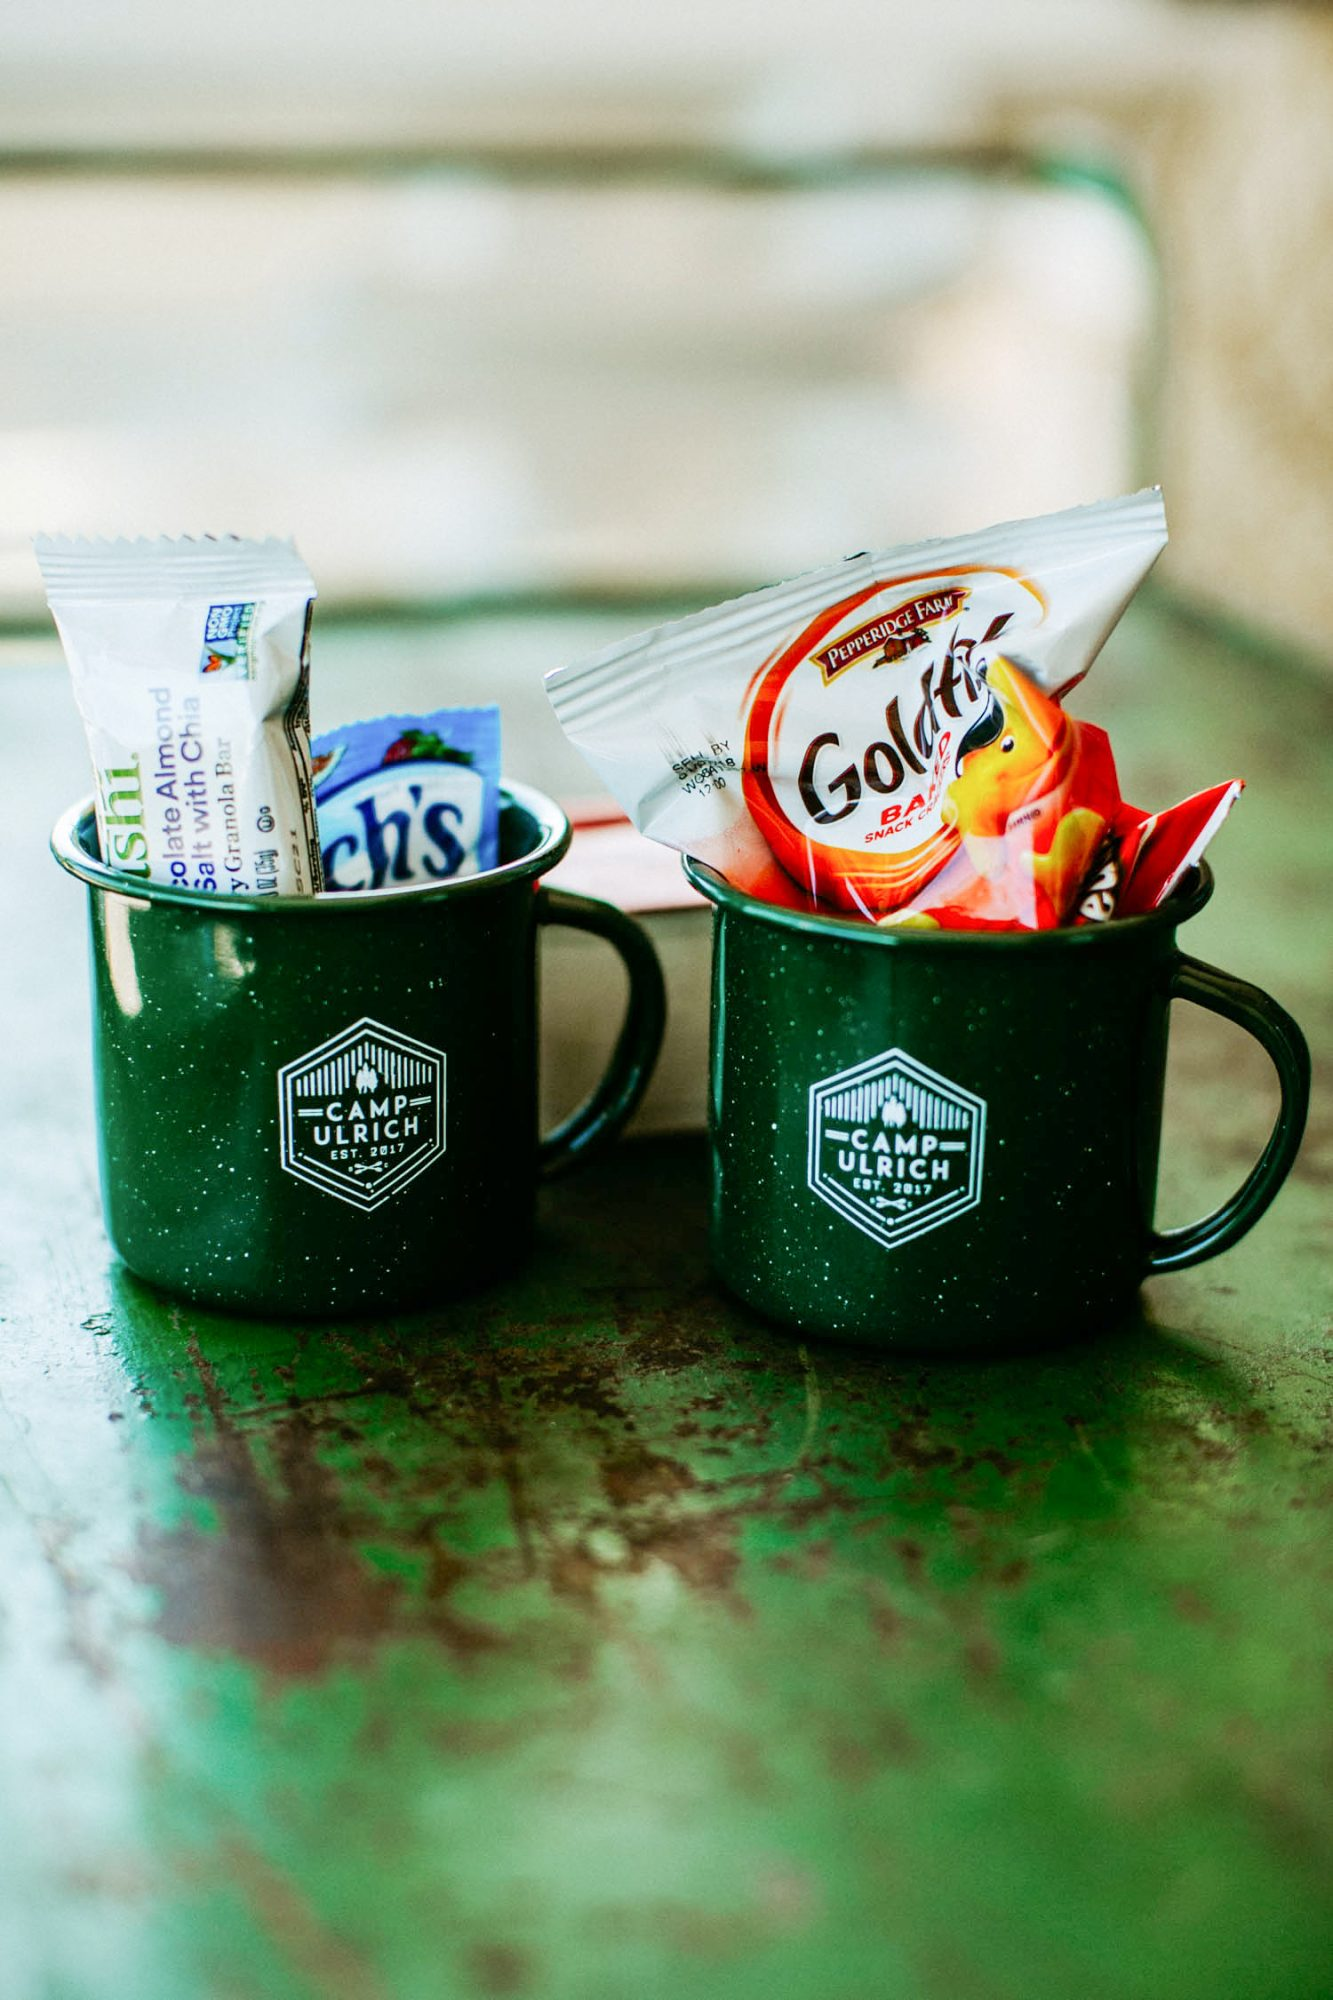 For this camp-themed wedding, the bride and groom stuffed theme-appropriate mugs with nostalgic treats.